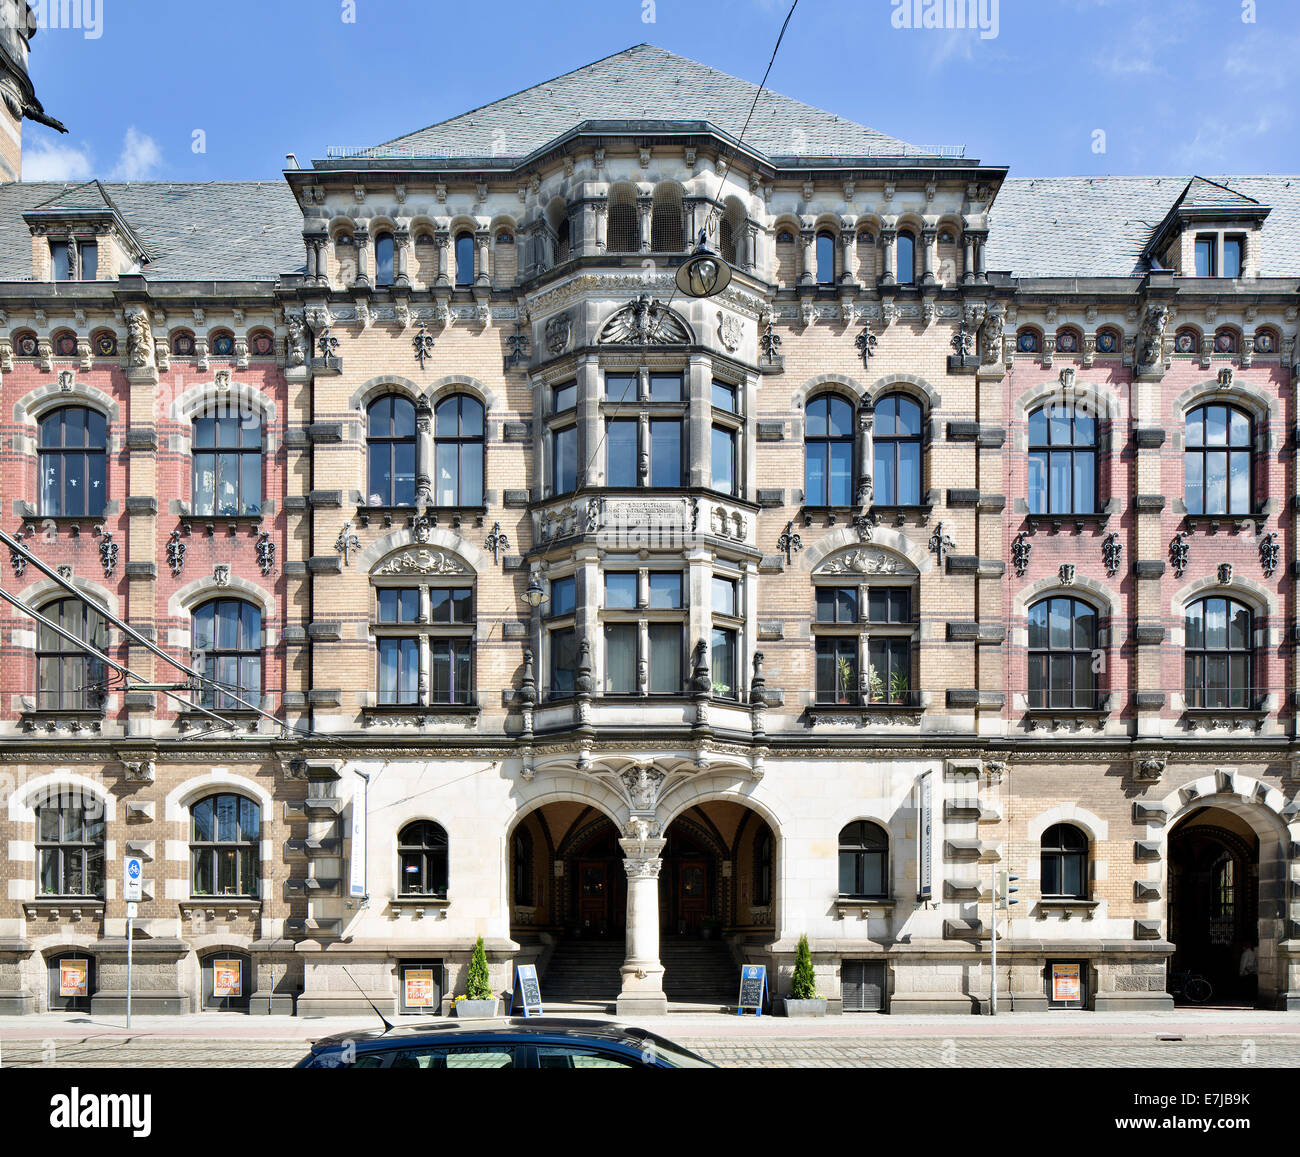 Bremen Courthouse, Bremen, Germany - Stock Image